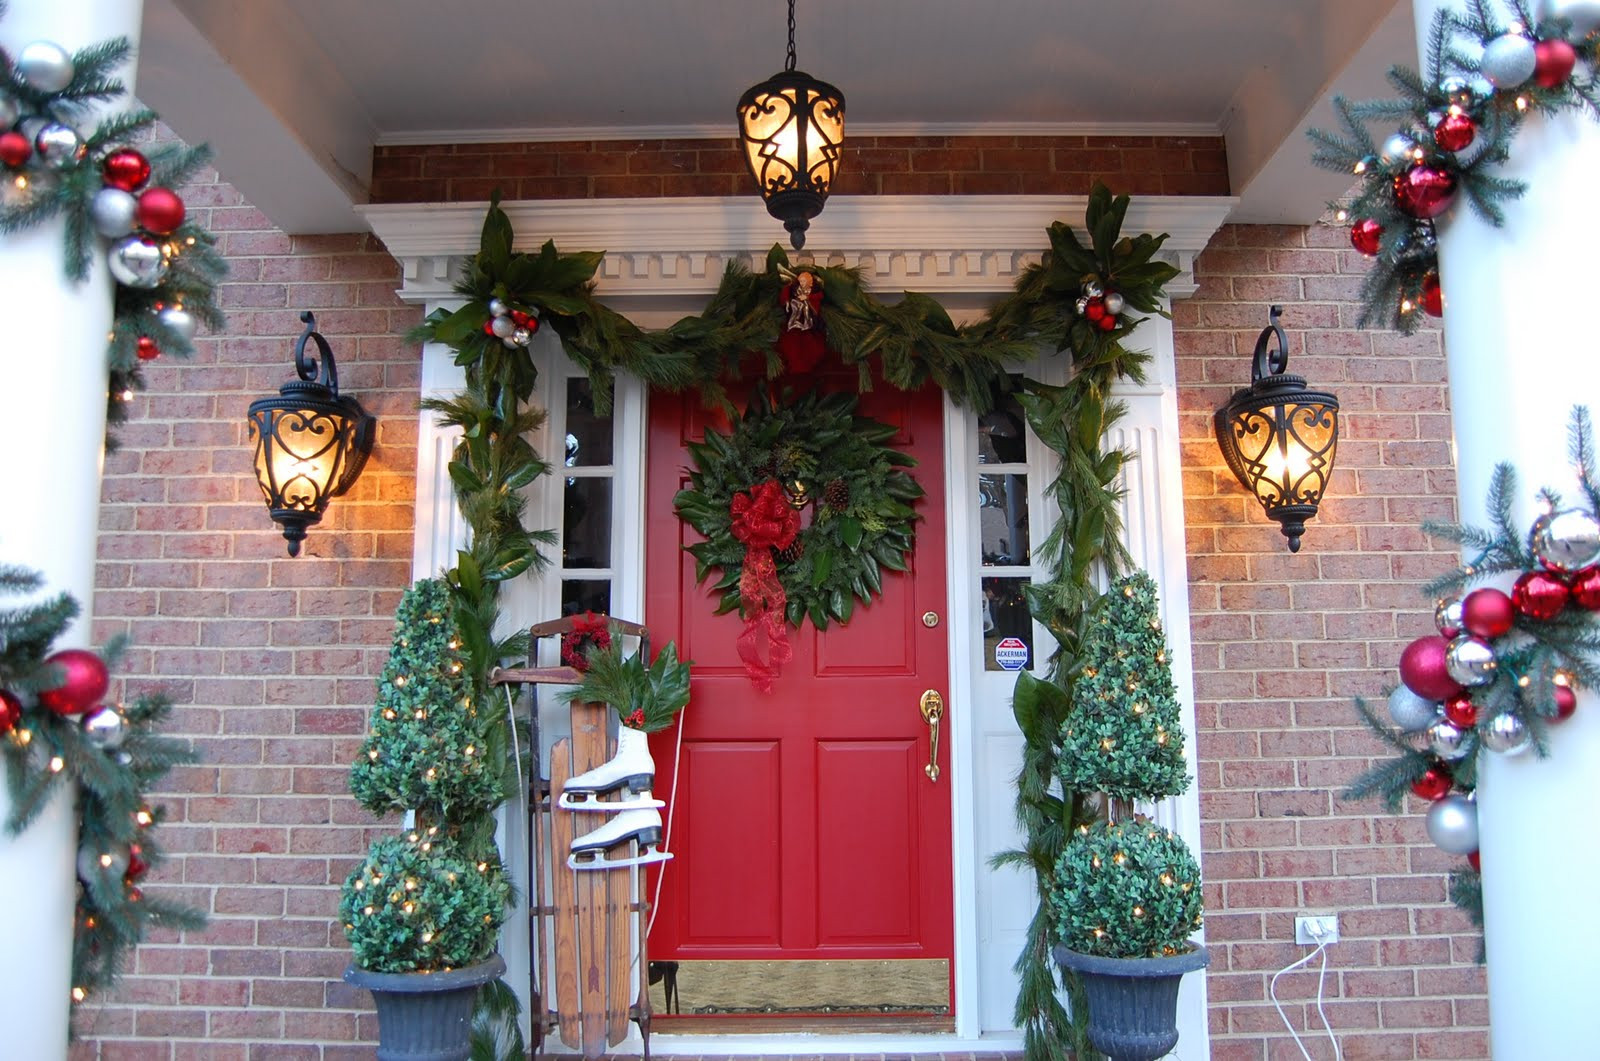 Best ideas about Outdoor Christmas Decor . Save or Pin 50 Best Outdoor Christmas Decorations for 2016 Now.